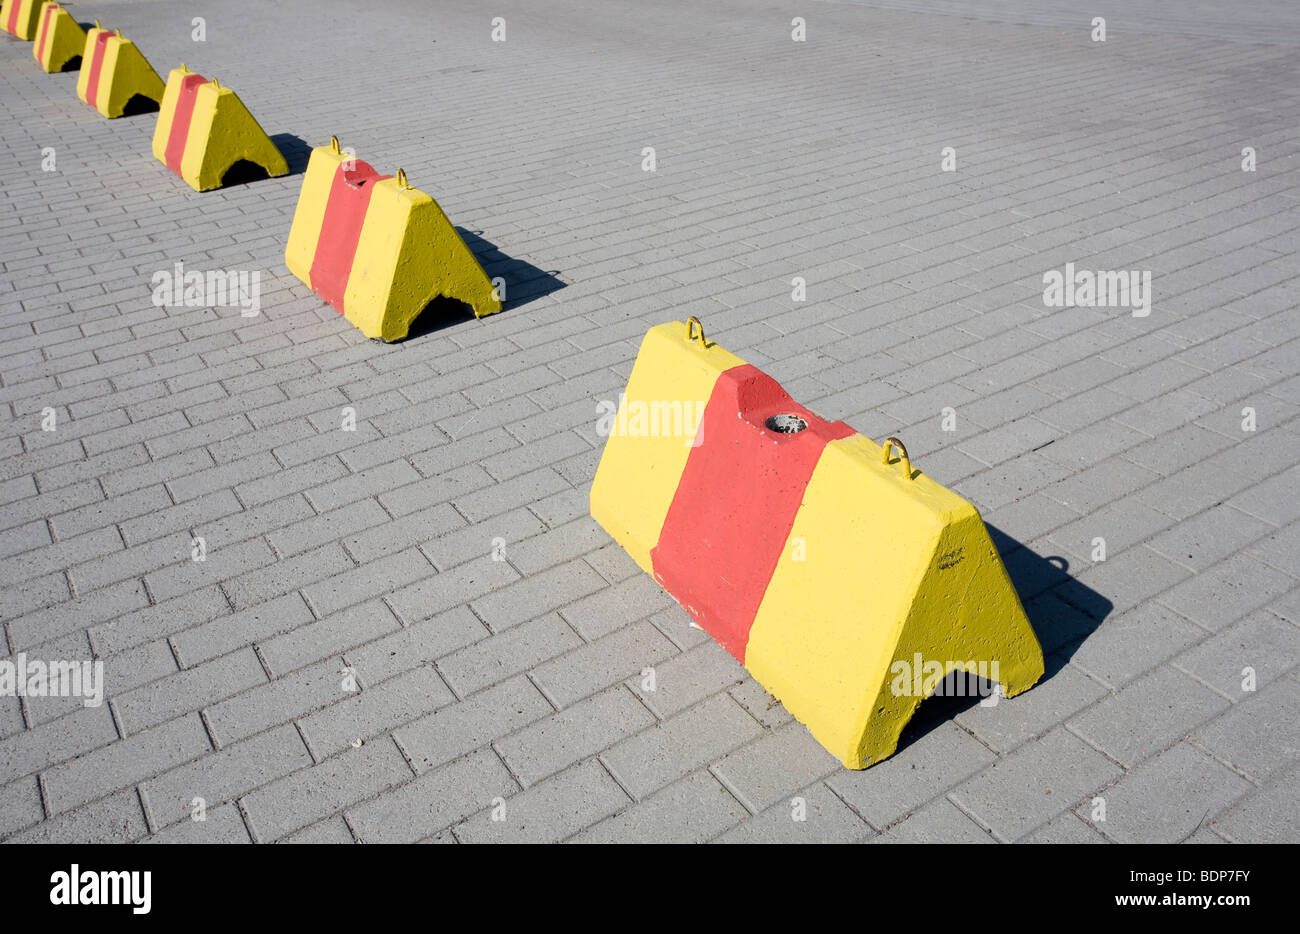 traffic obstacles - Stock Image